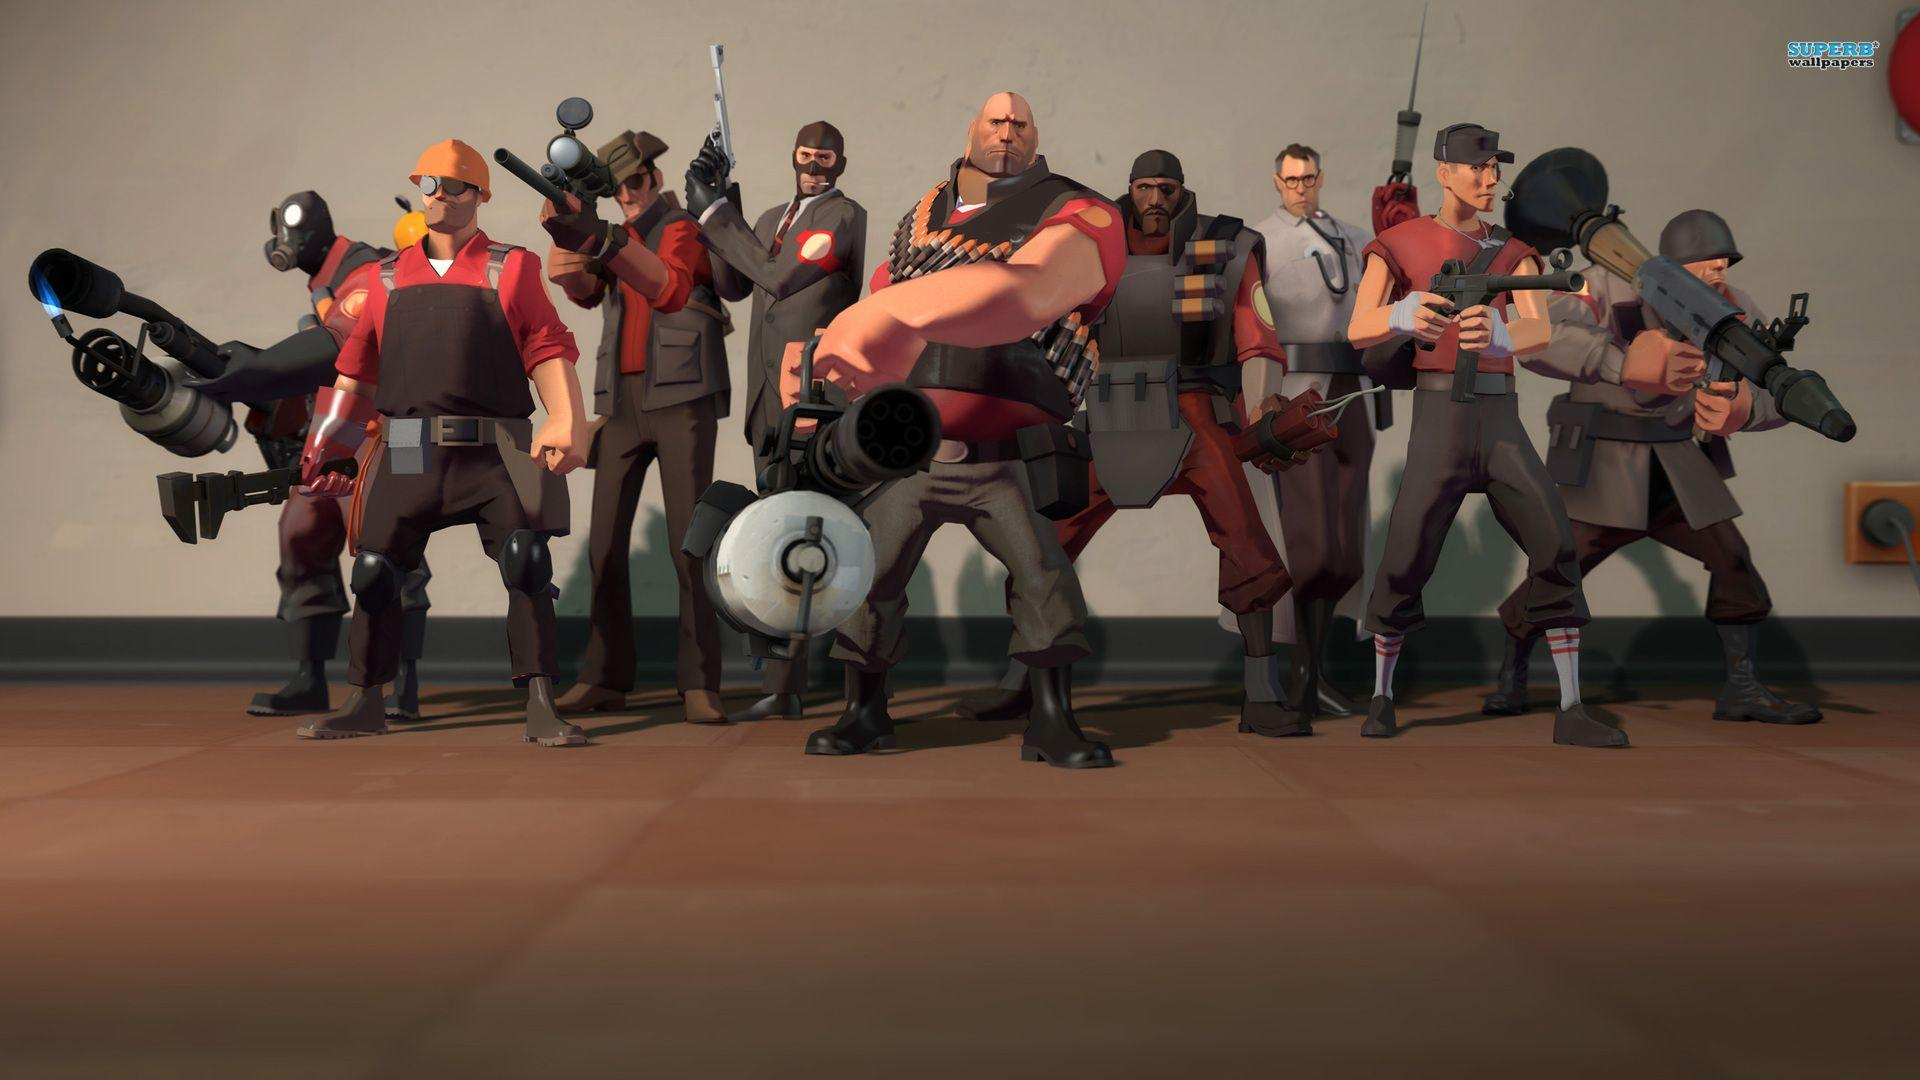 Team Fortress 2 Wallpapers Hd Wallpaper Cave